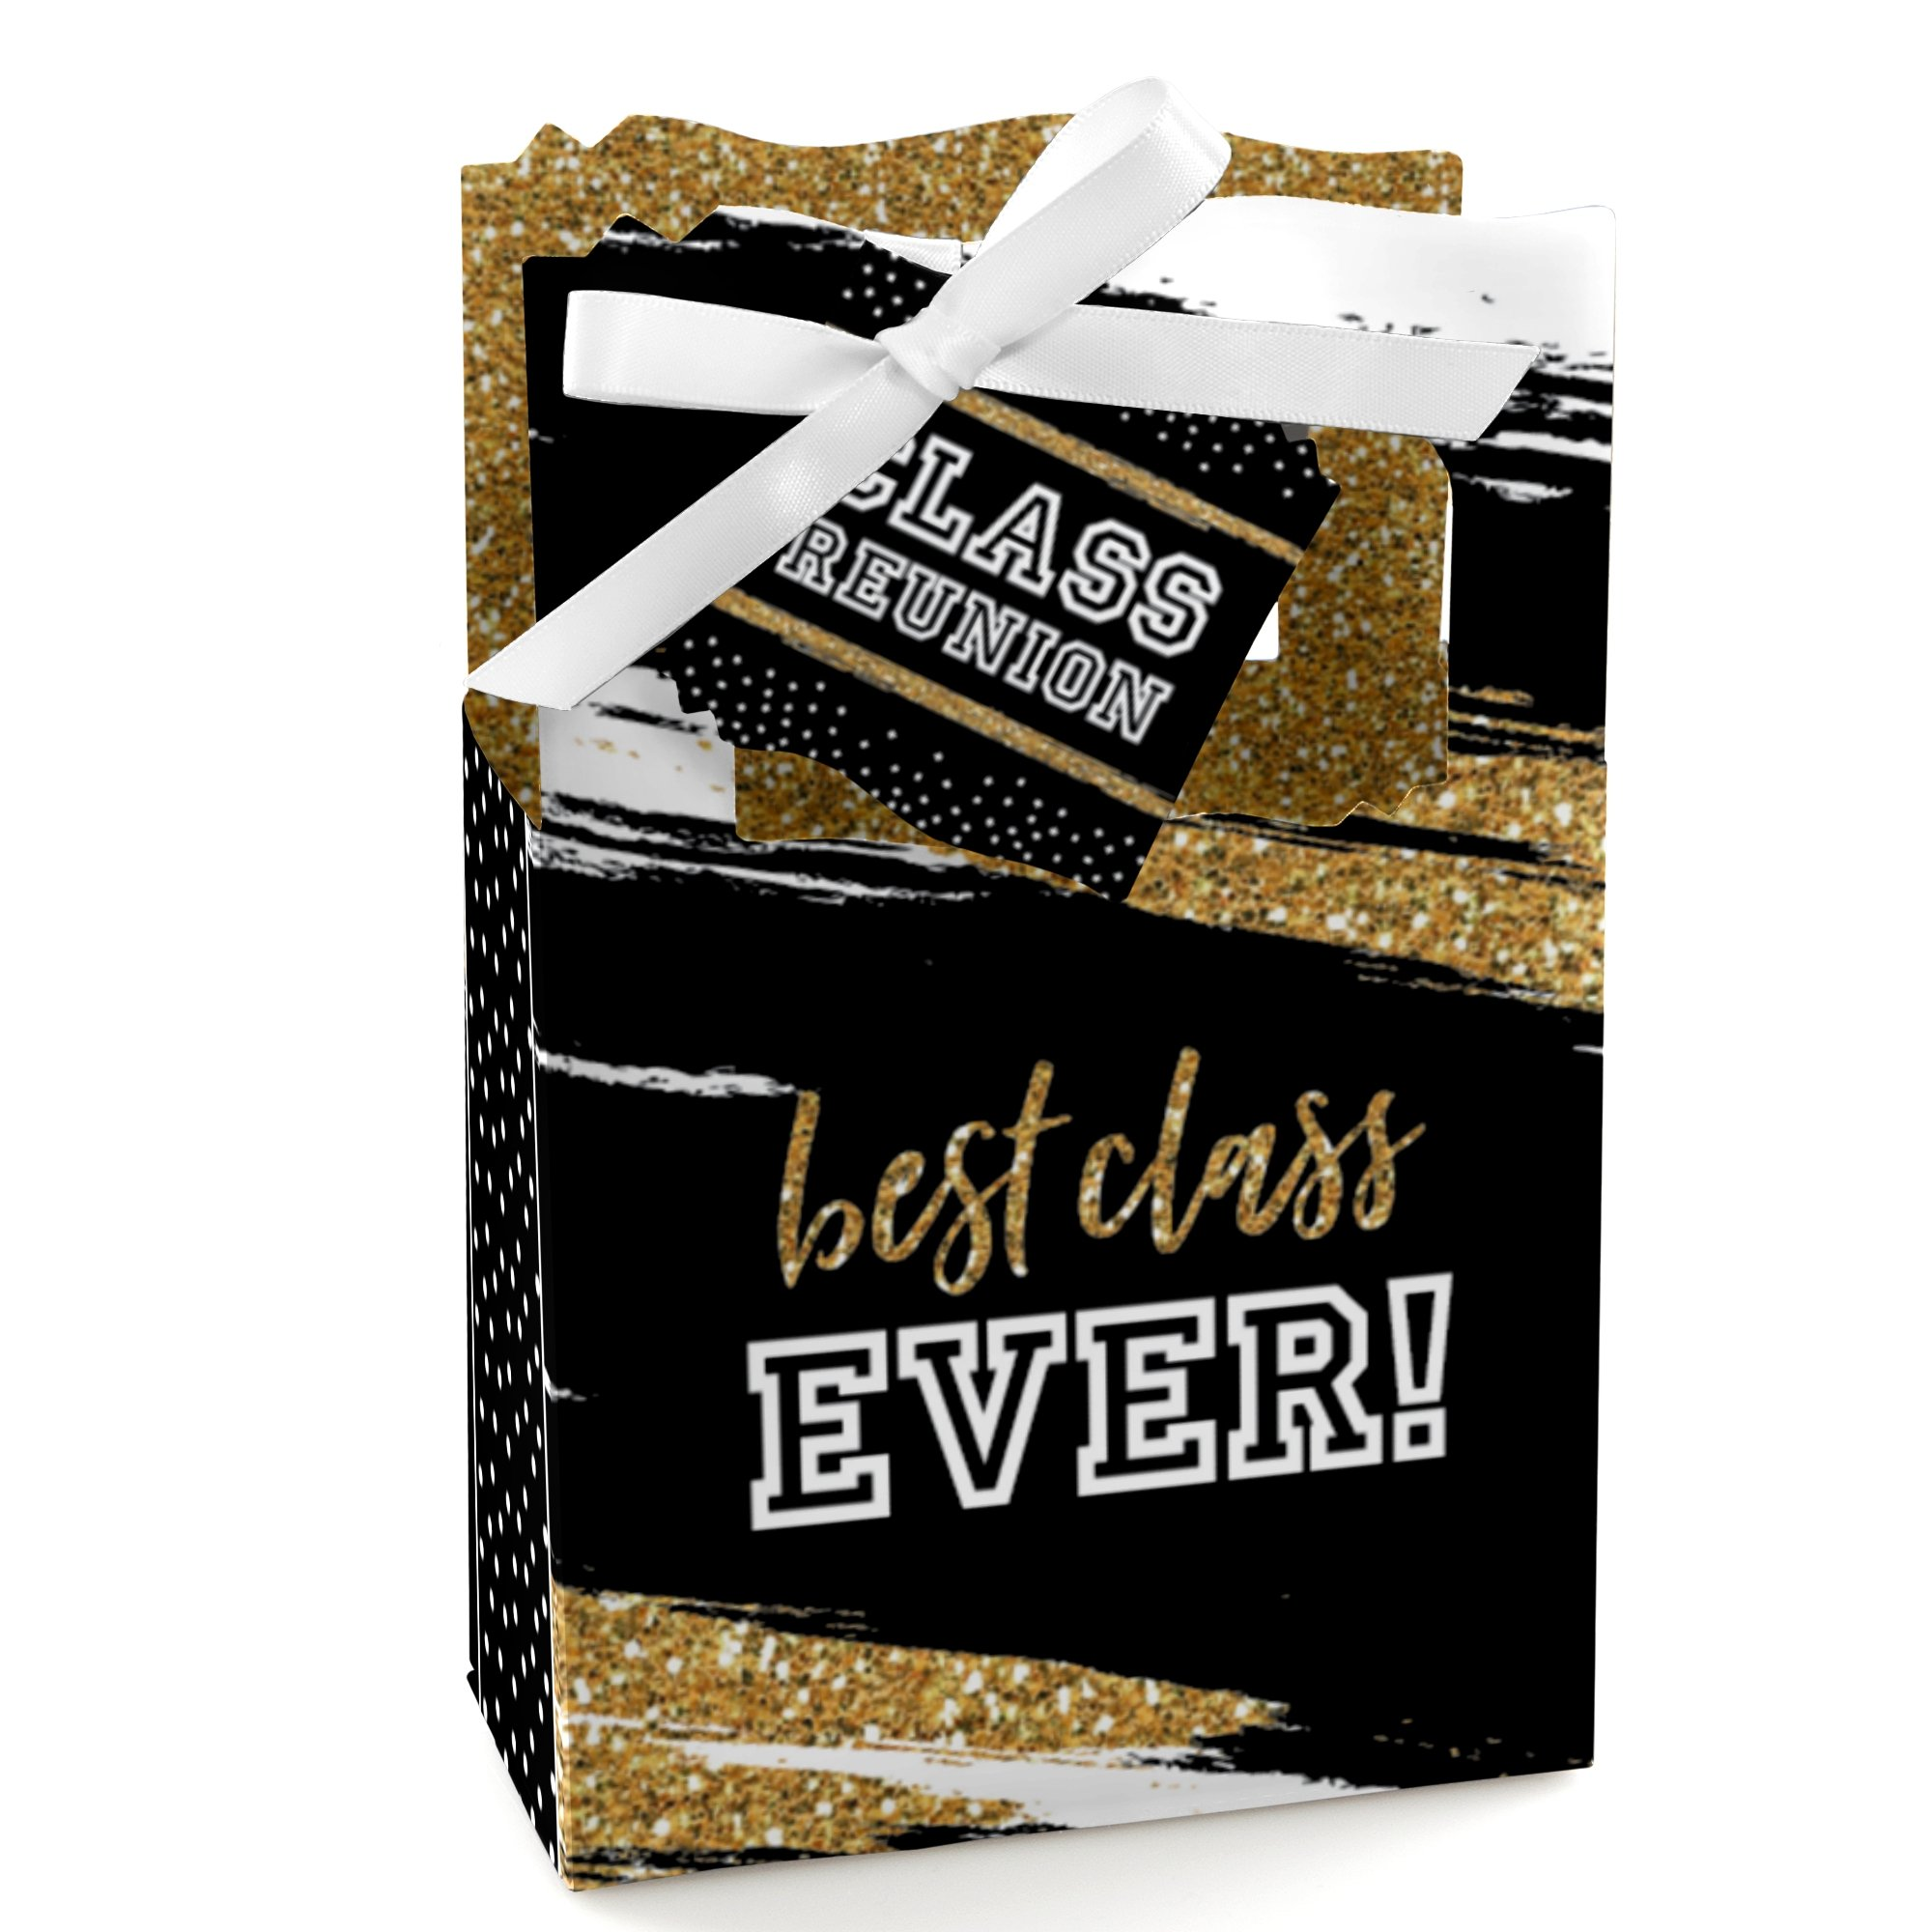 Reunited - School Class Reunion Party Favor Boxes - Set of 12